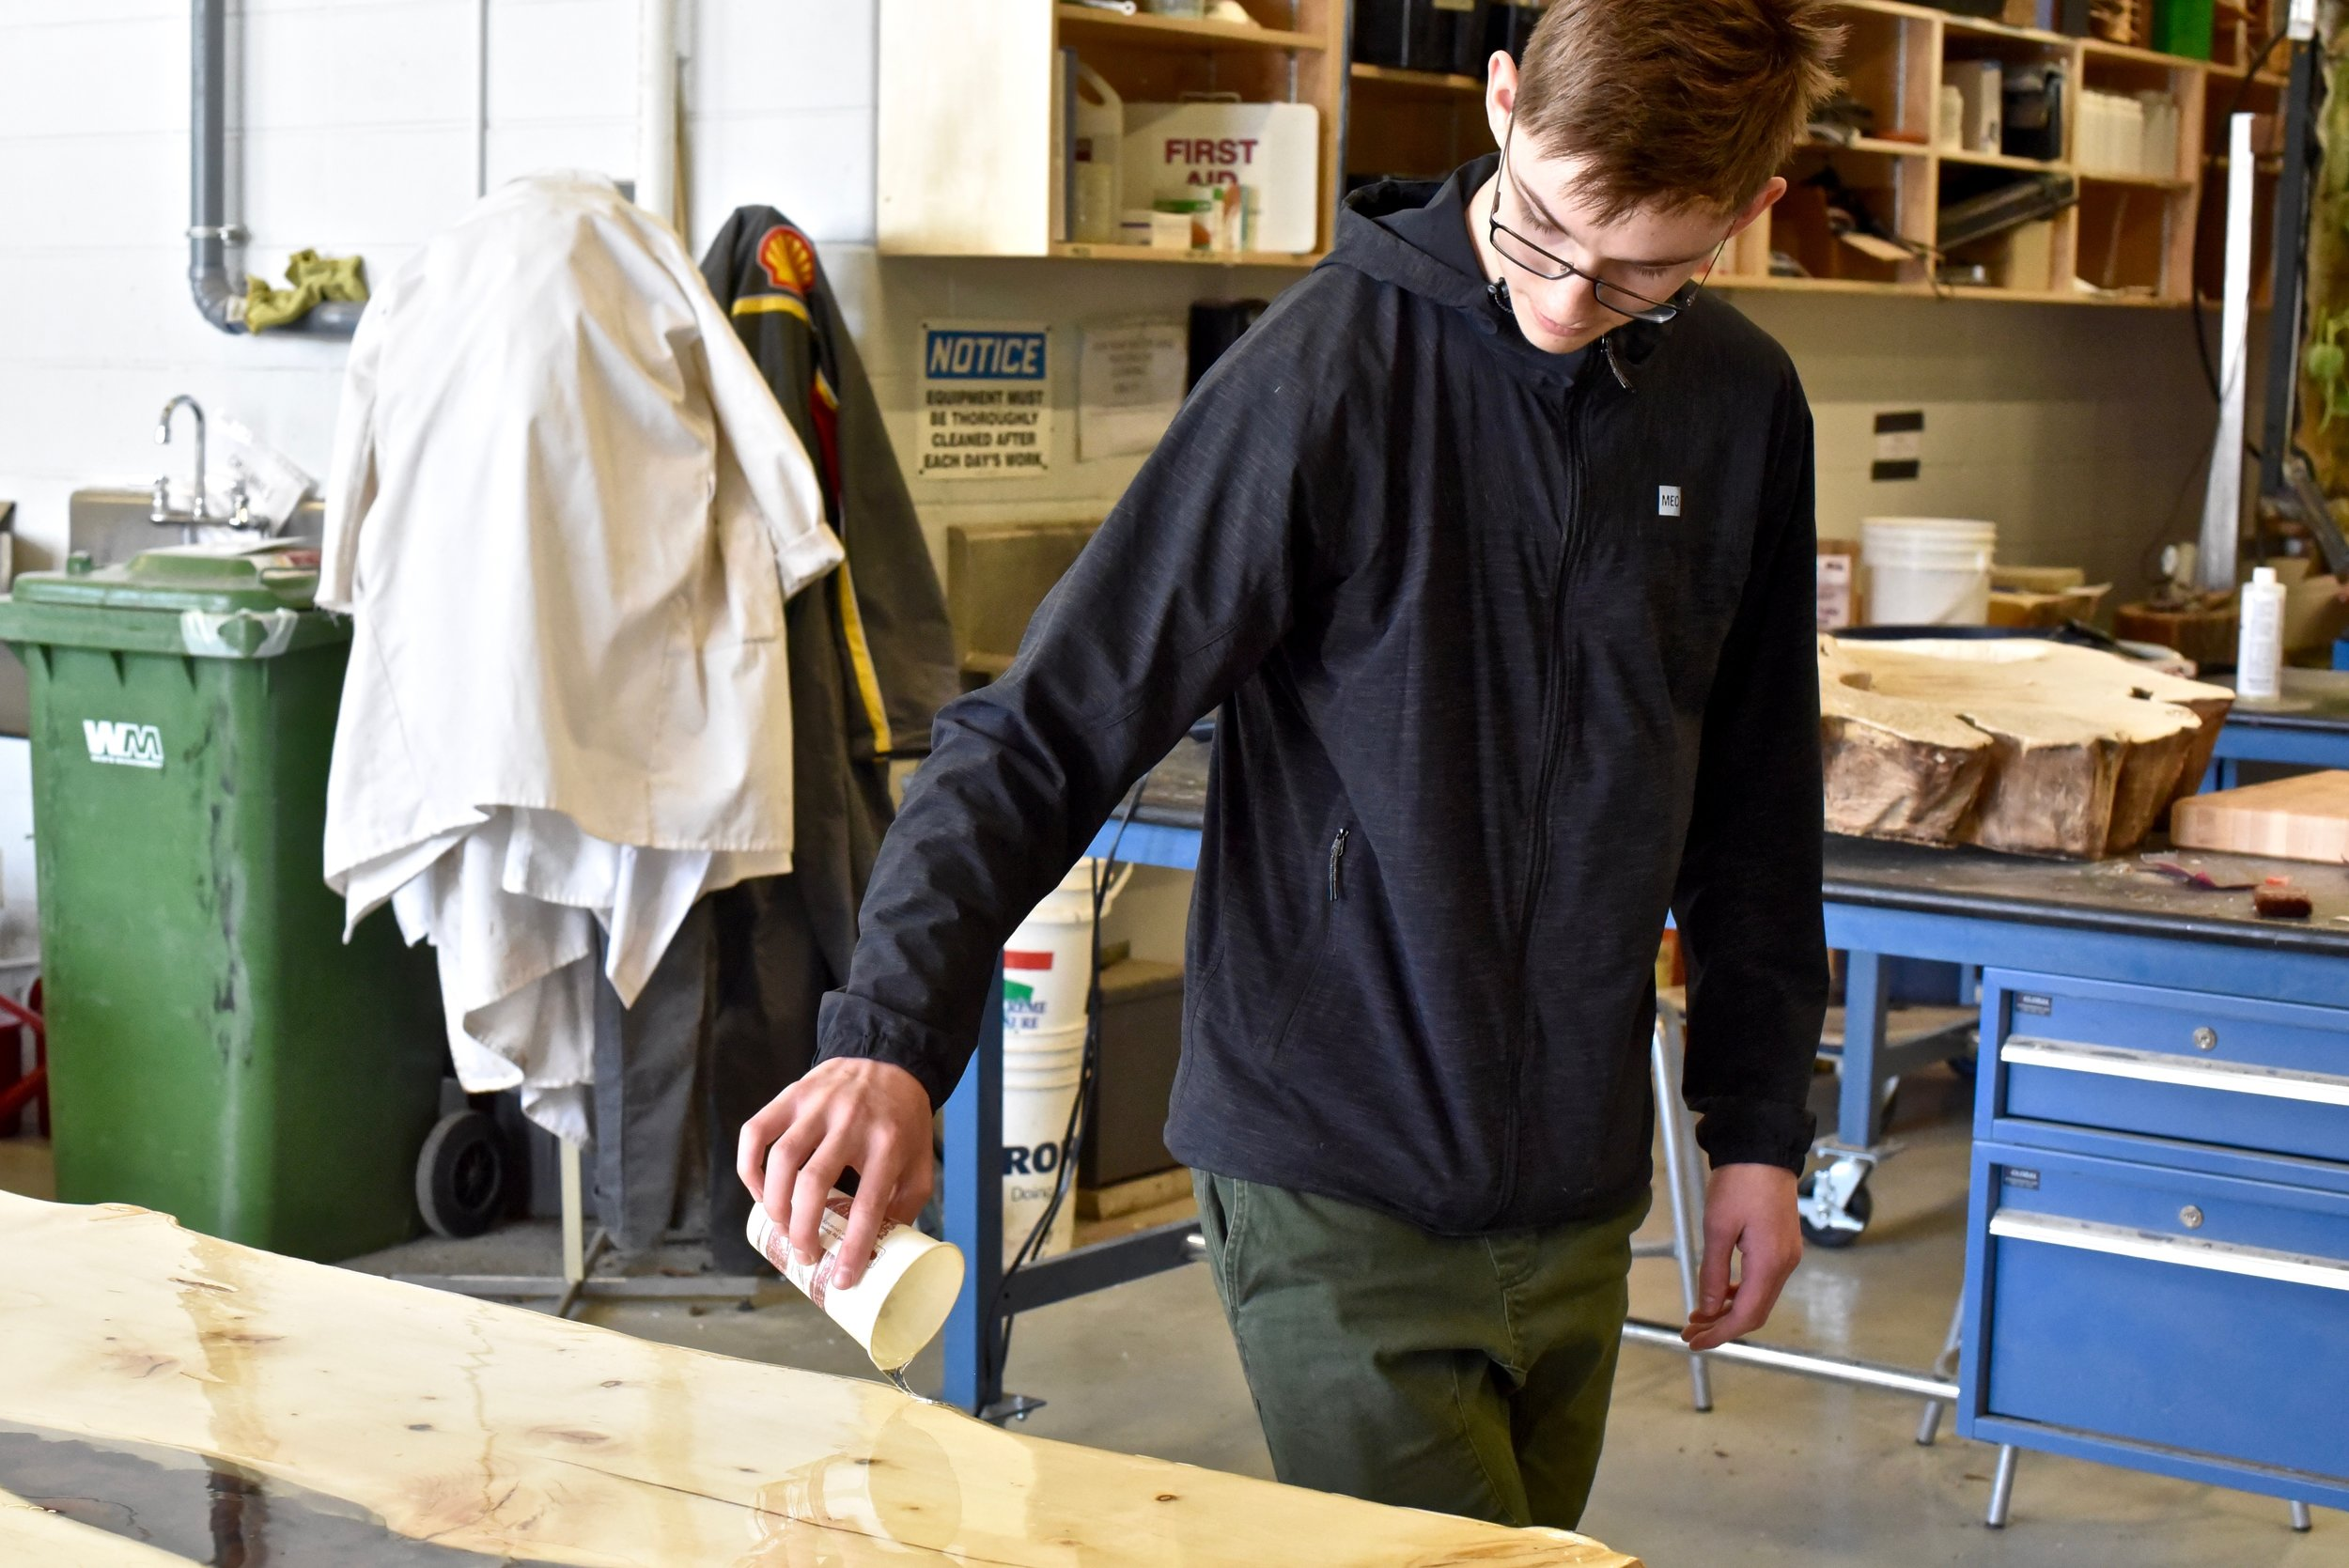 several students cut and sand wood into rustic, live-edge benches and tables — using only recycled or upcycled wood, of course. (Sarah Lawrynuik)